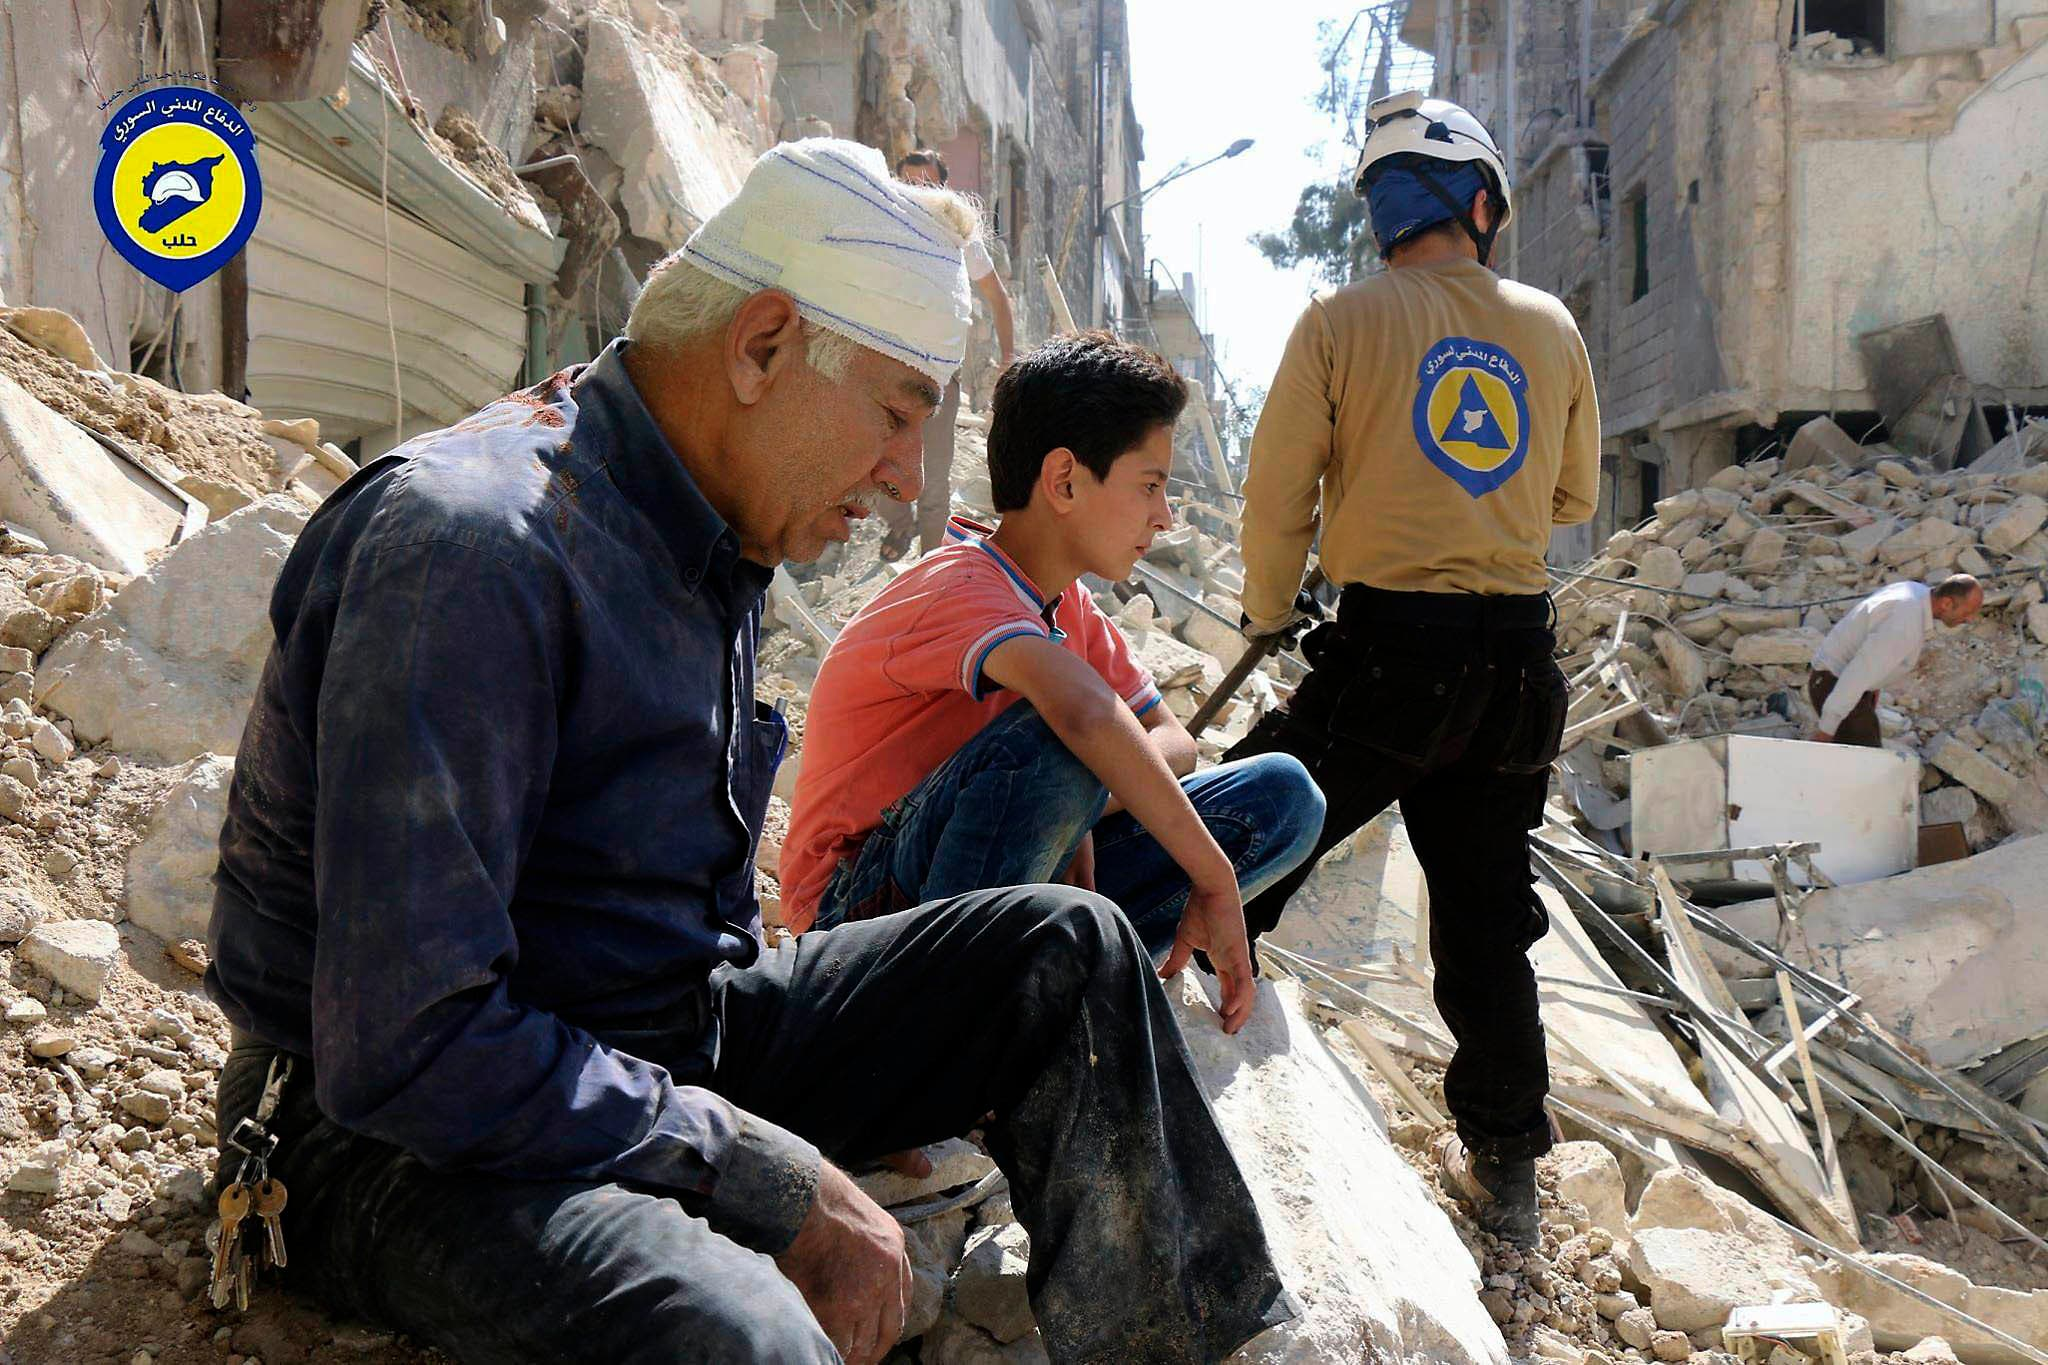 In this Oct. 11, 2016 file photo, provided by the Syrian Civil Defense group known as the White Helmets, residents sit amongst rubble in rebel-held eastern Aleppo, Syria.  AP